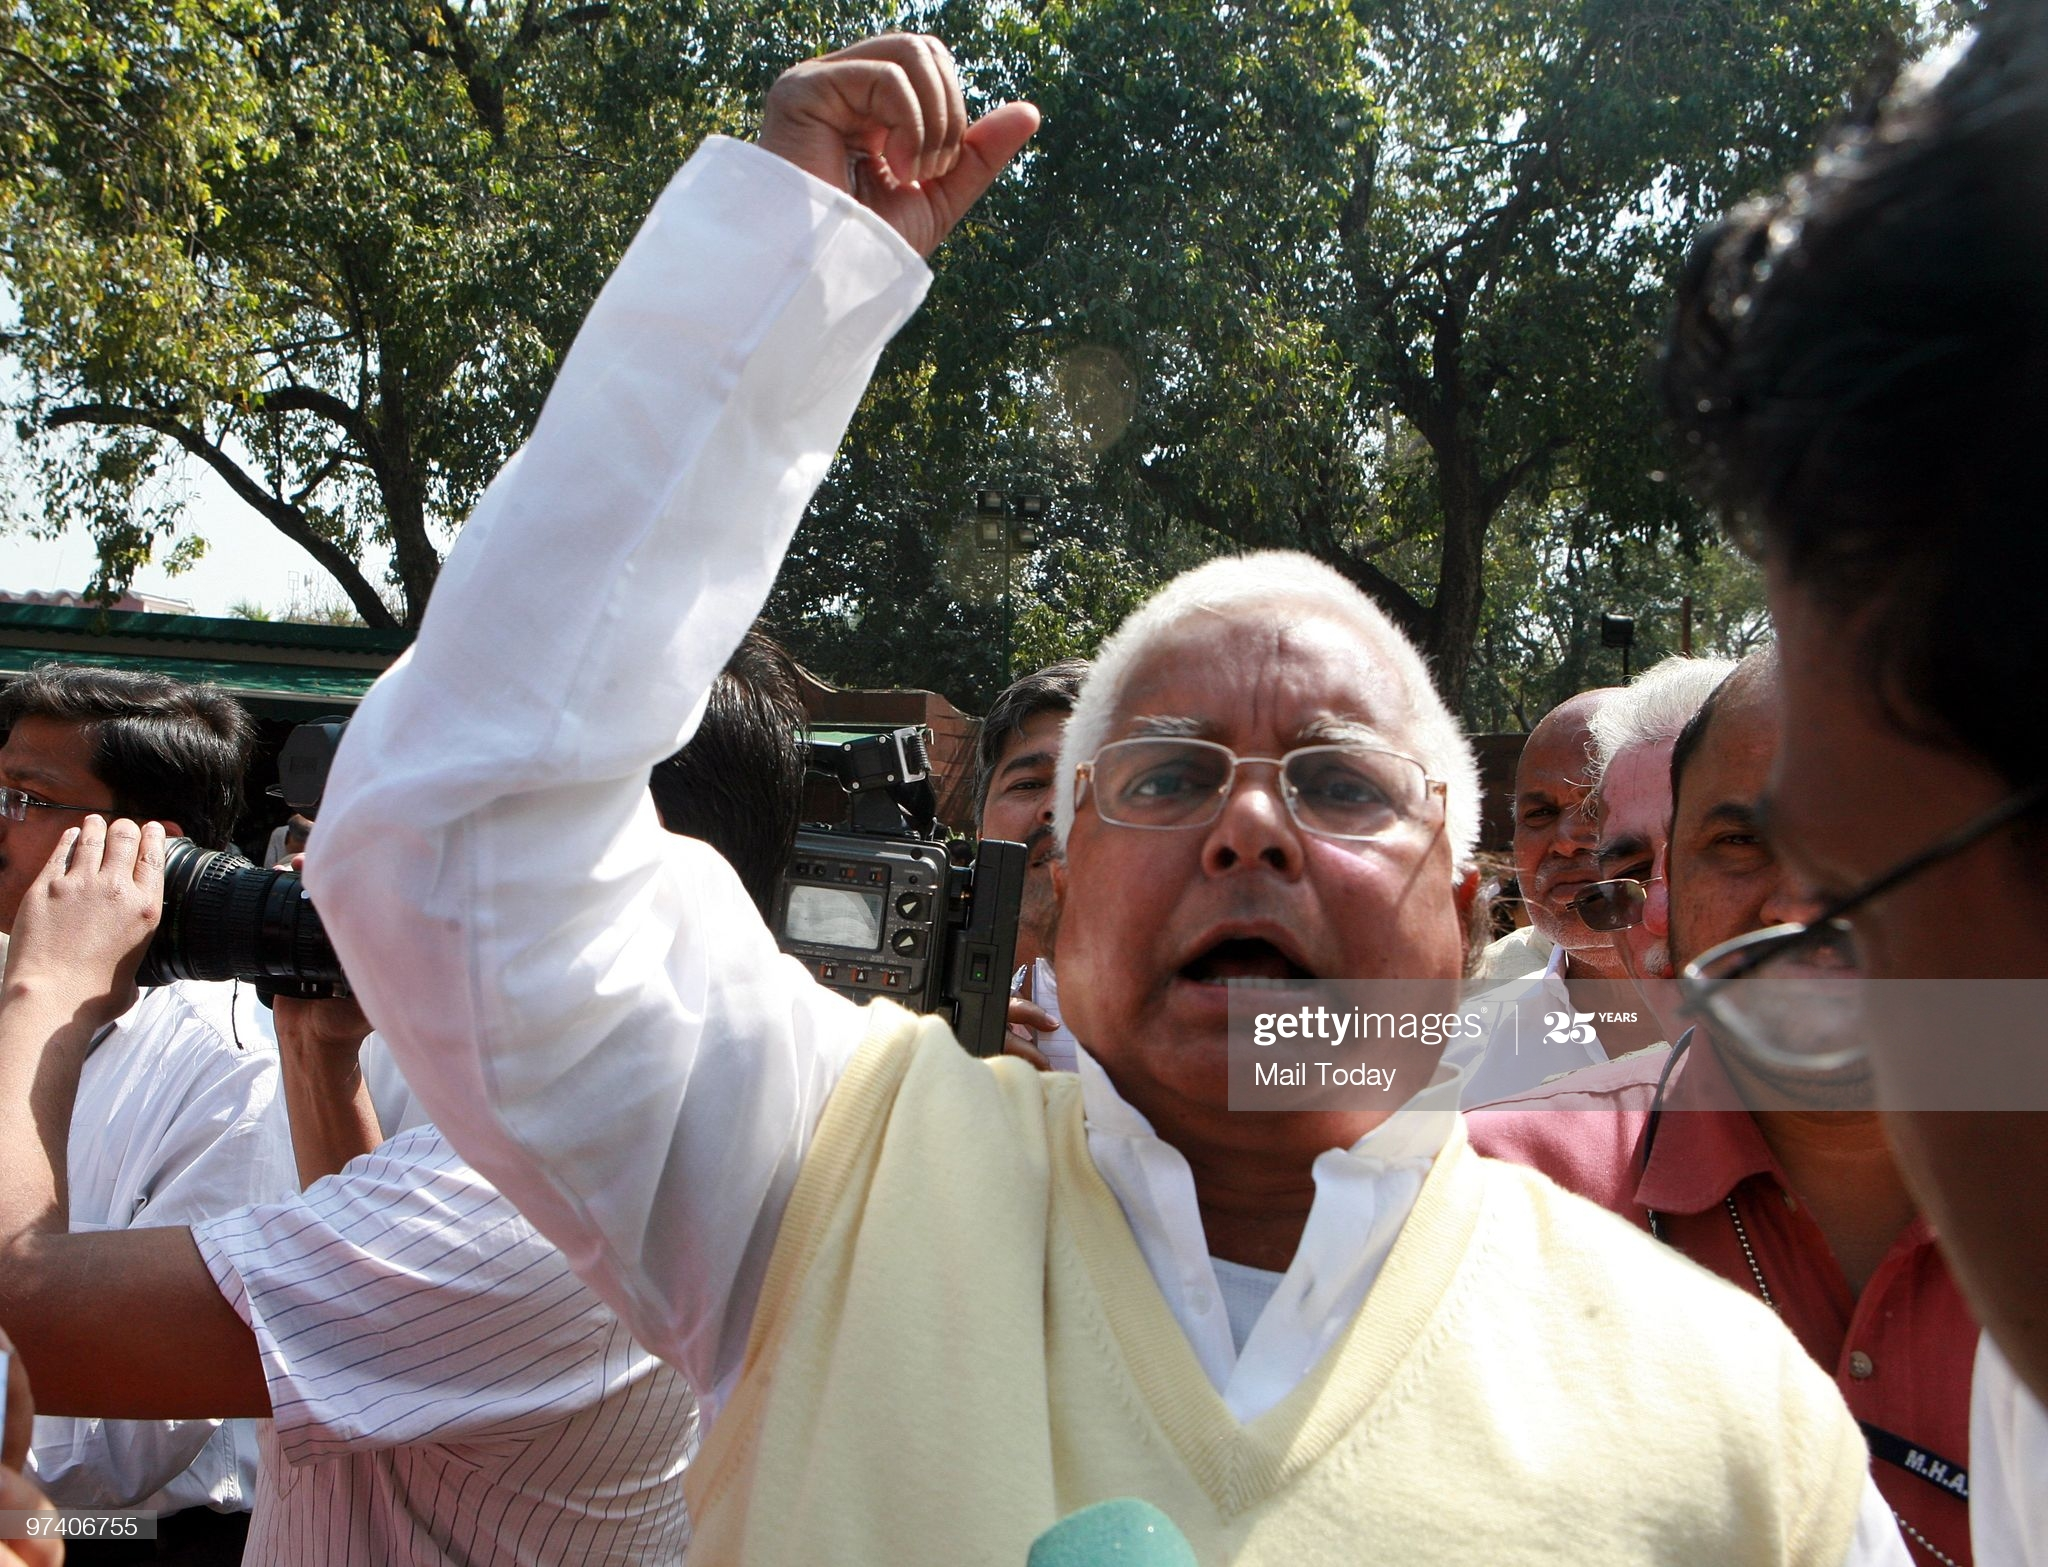 NEW DELHI, INDIA � FEBRUARY 26: Senior political leader Lalu Prasad Yadav addresses the media after the opposition leaders walked out of the parliament house to protest against the Annual Budget 2010-2011 in New Delhi on February 26, 2010. (Photo by Kaushik Roy/The India Today Group via Getty Images)